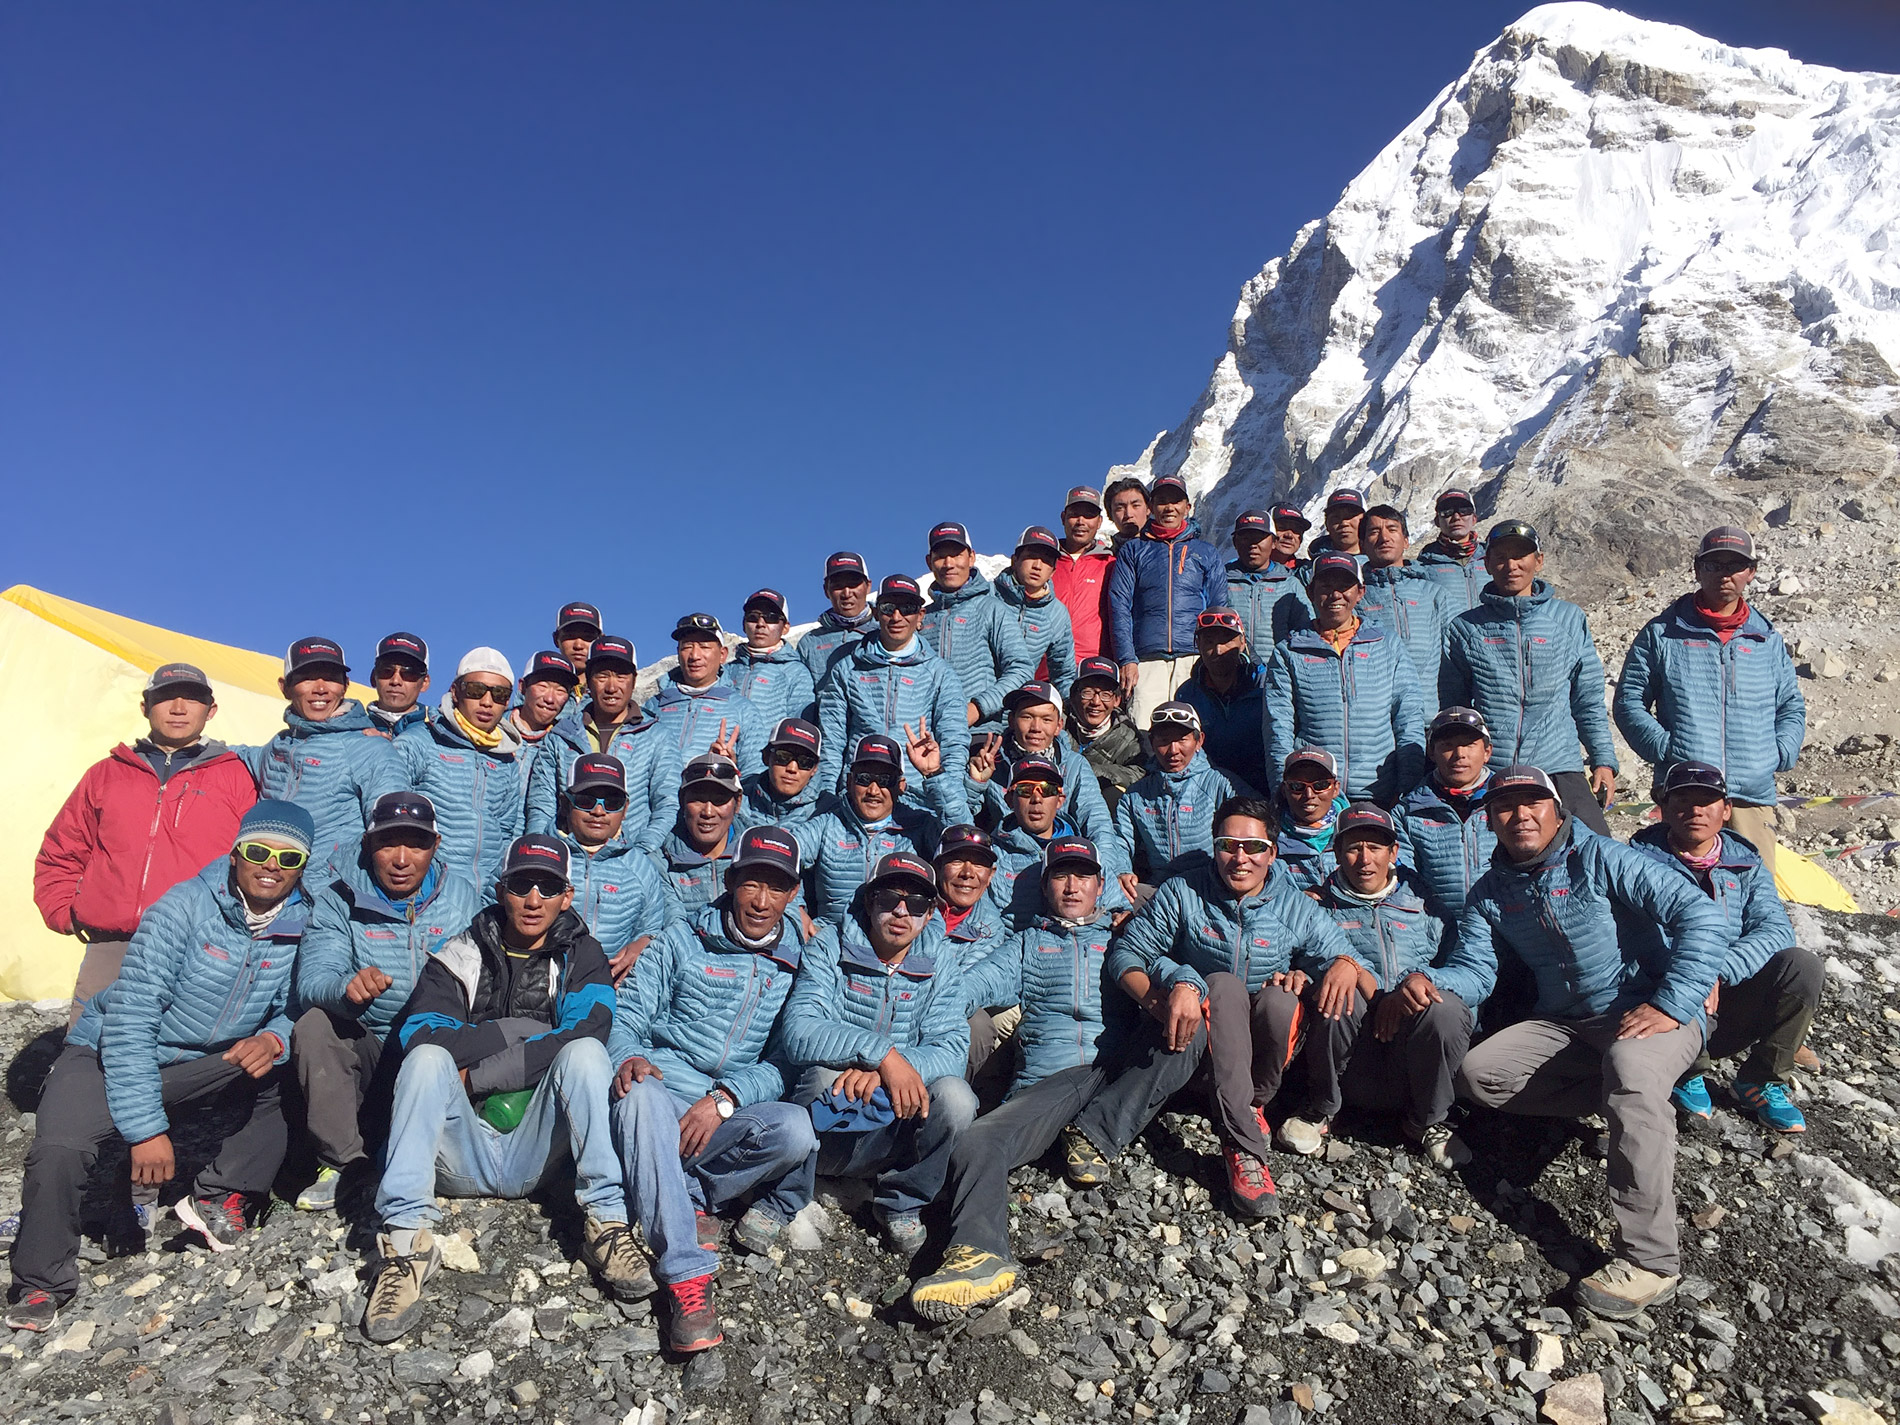 10 Mt. Everest Expedition Coverage with International Mountain